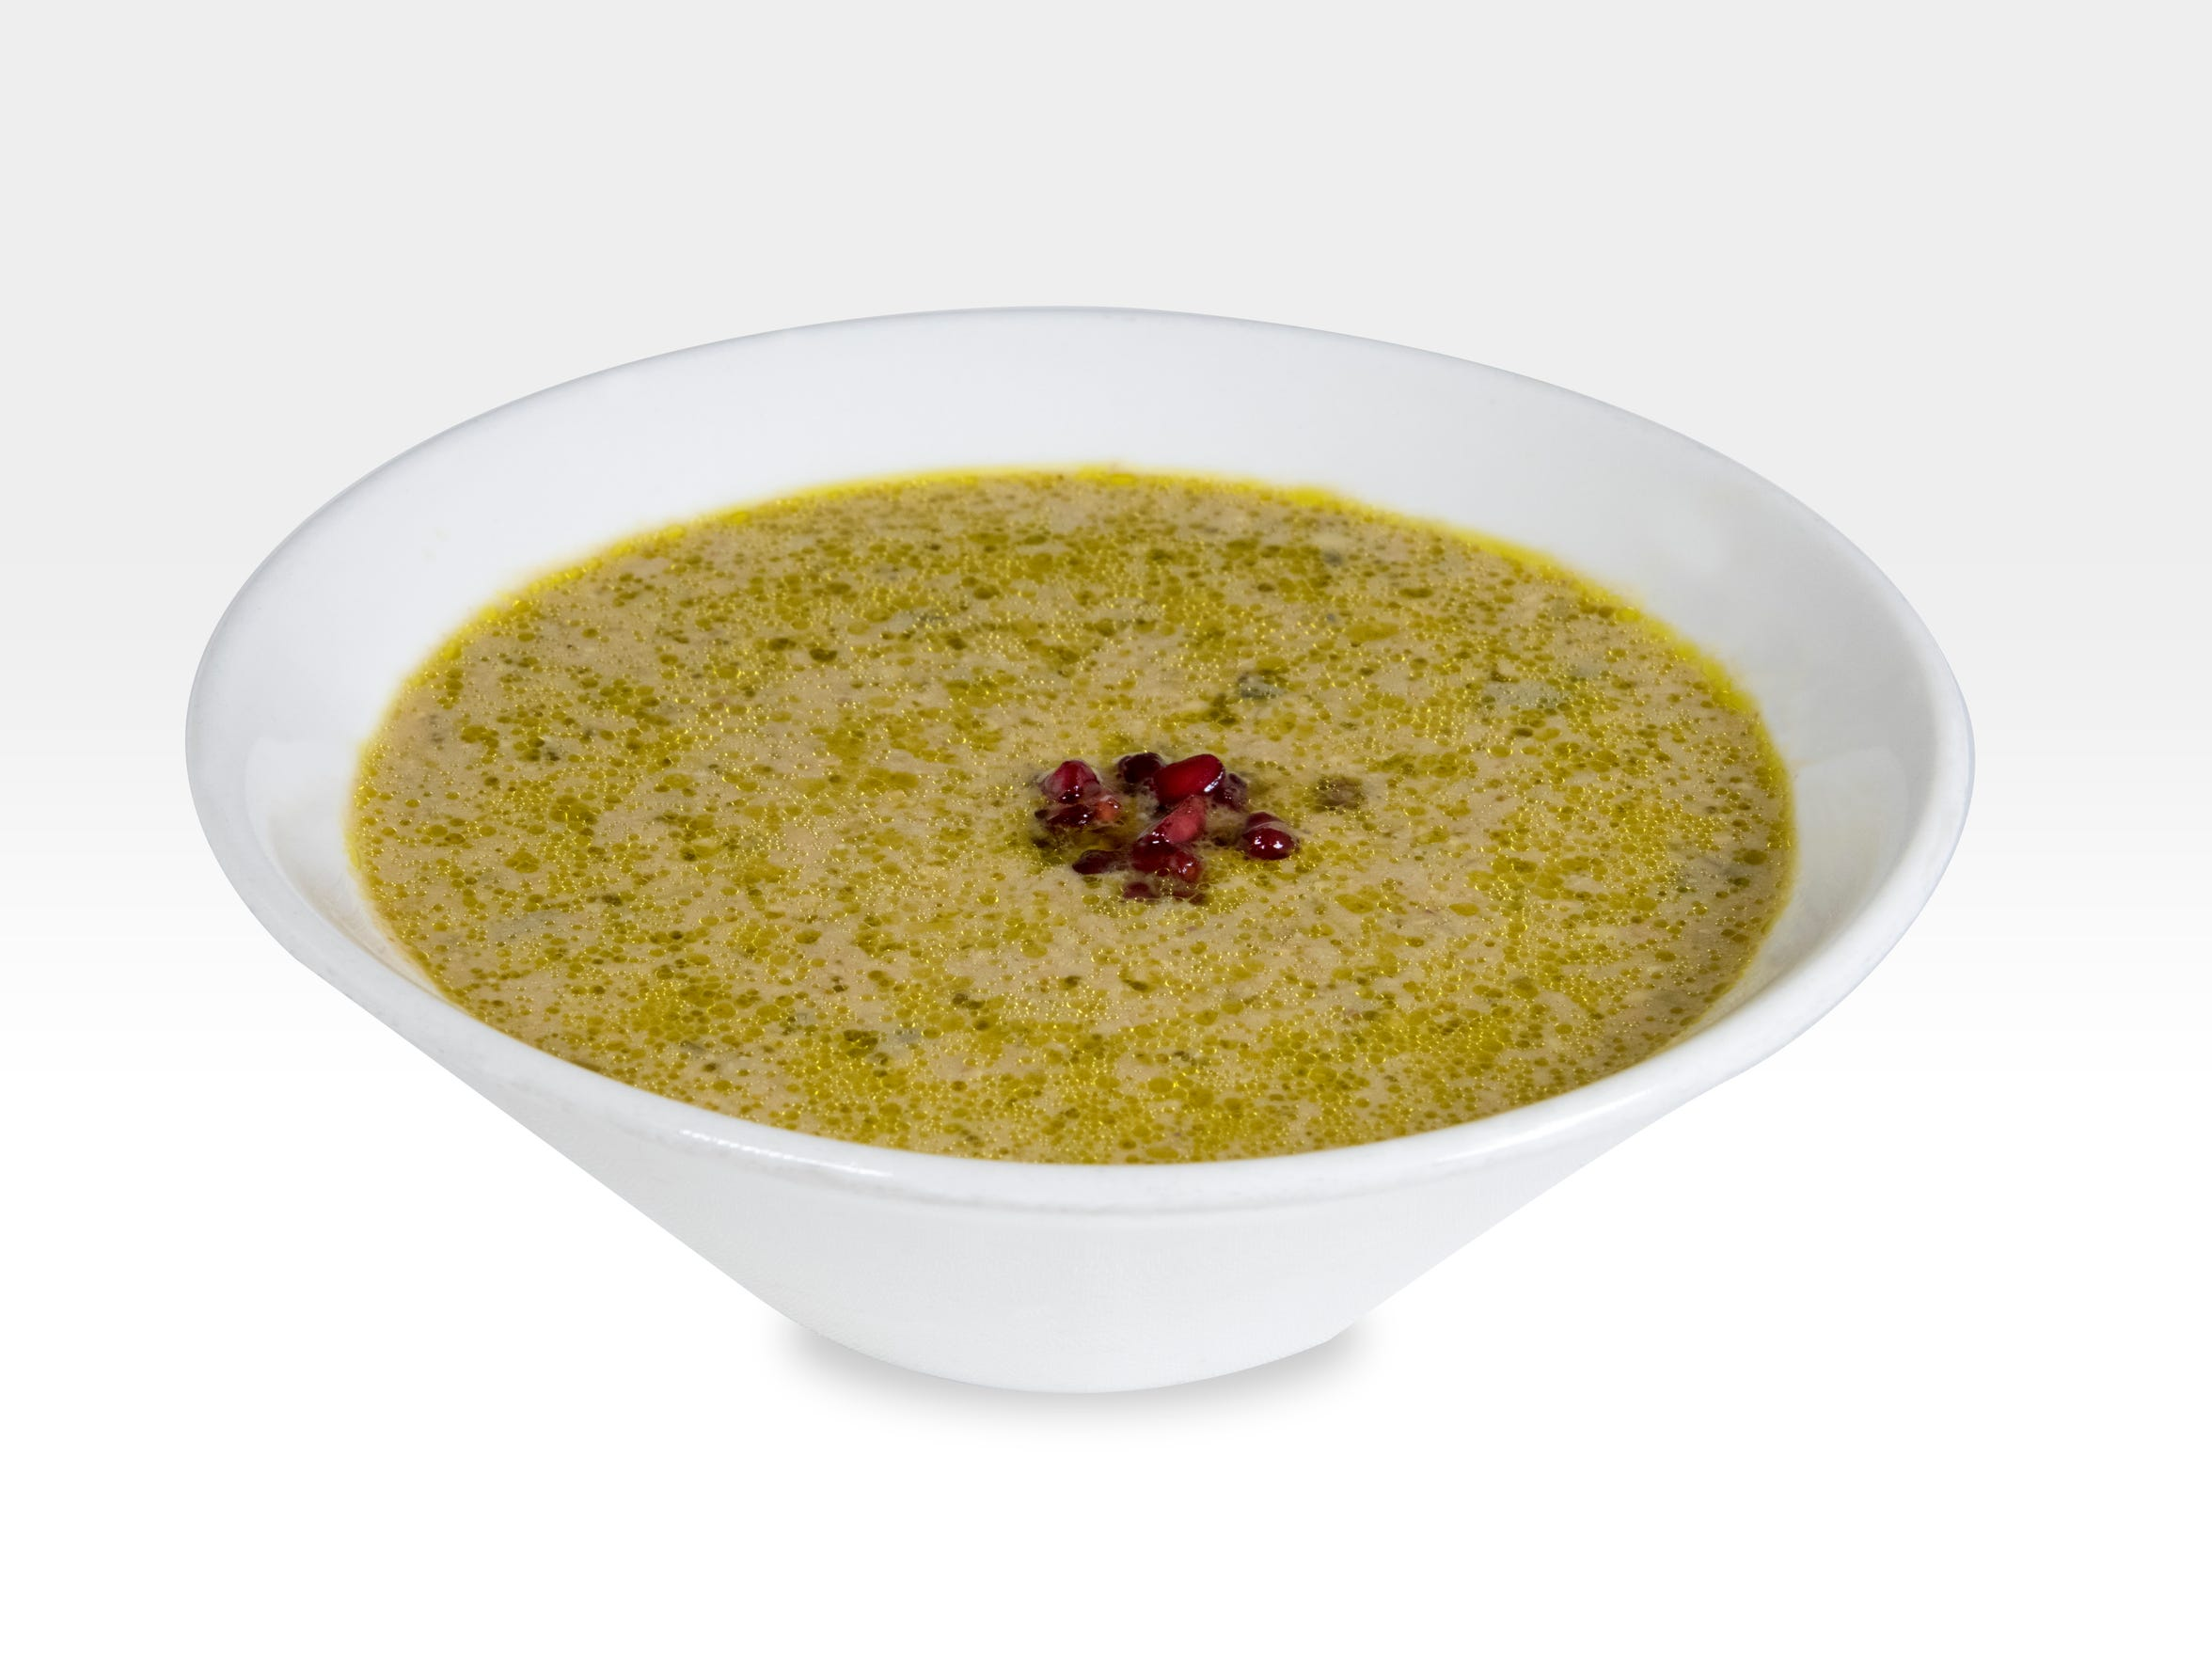 Pistachio soup, an indulgent Persian dish, requires